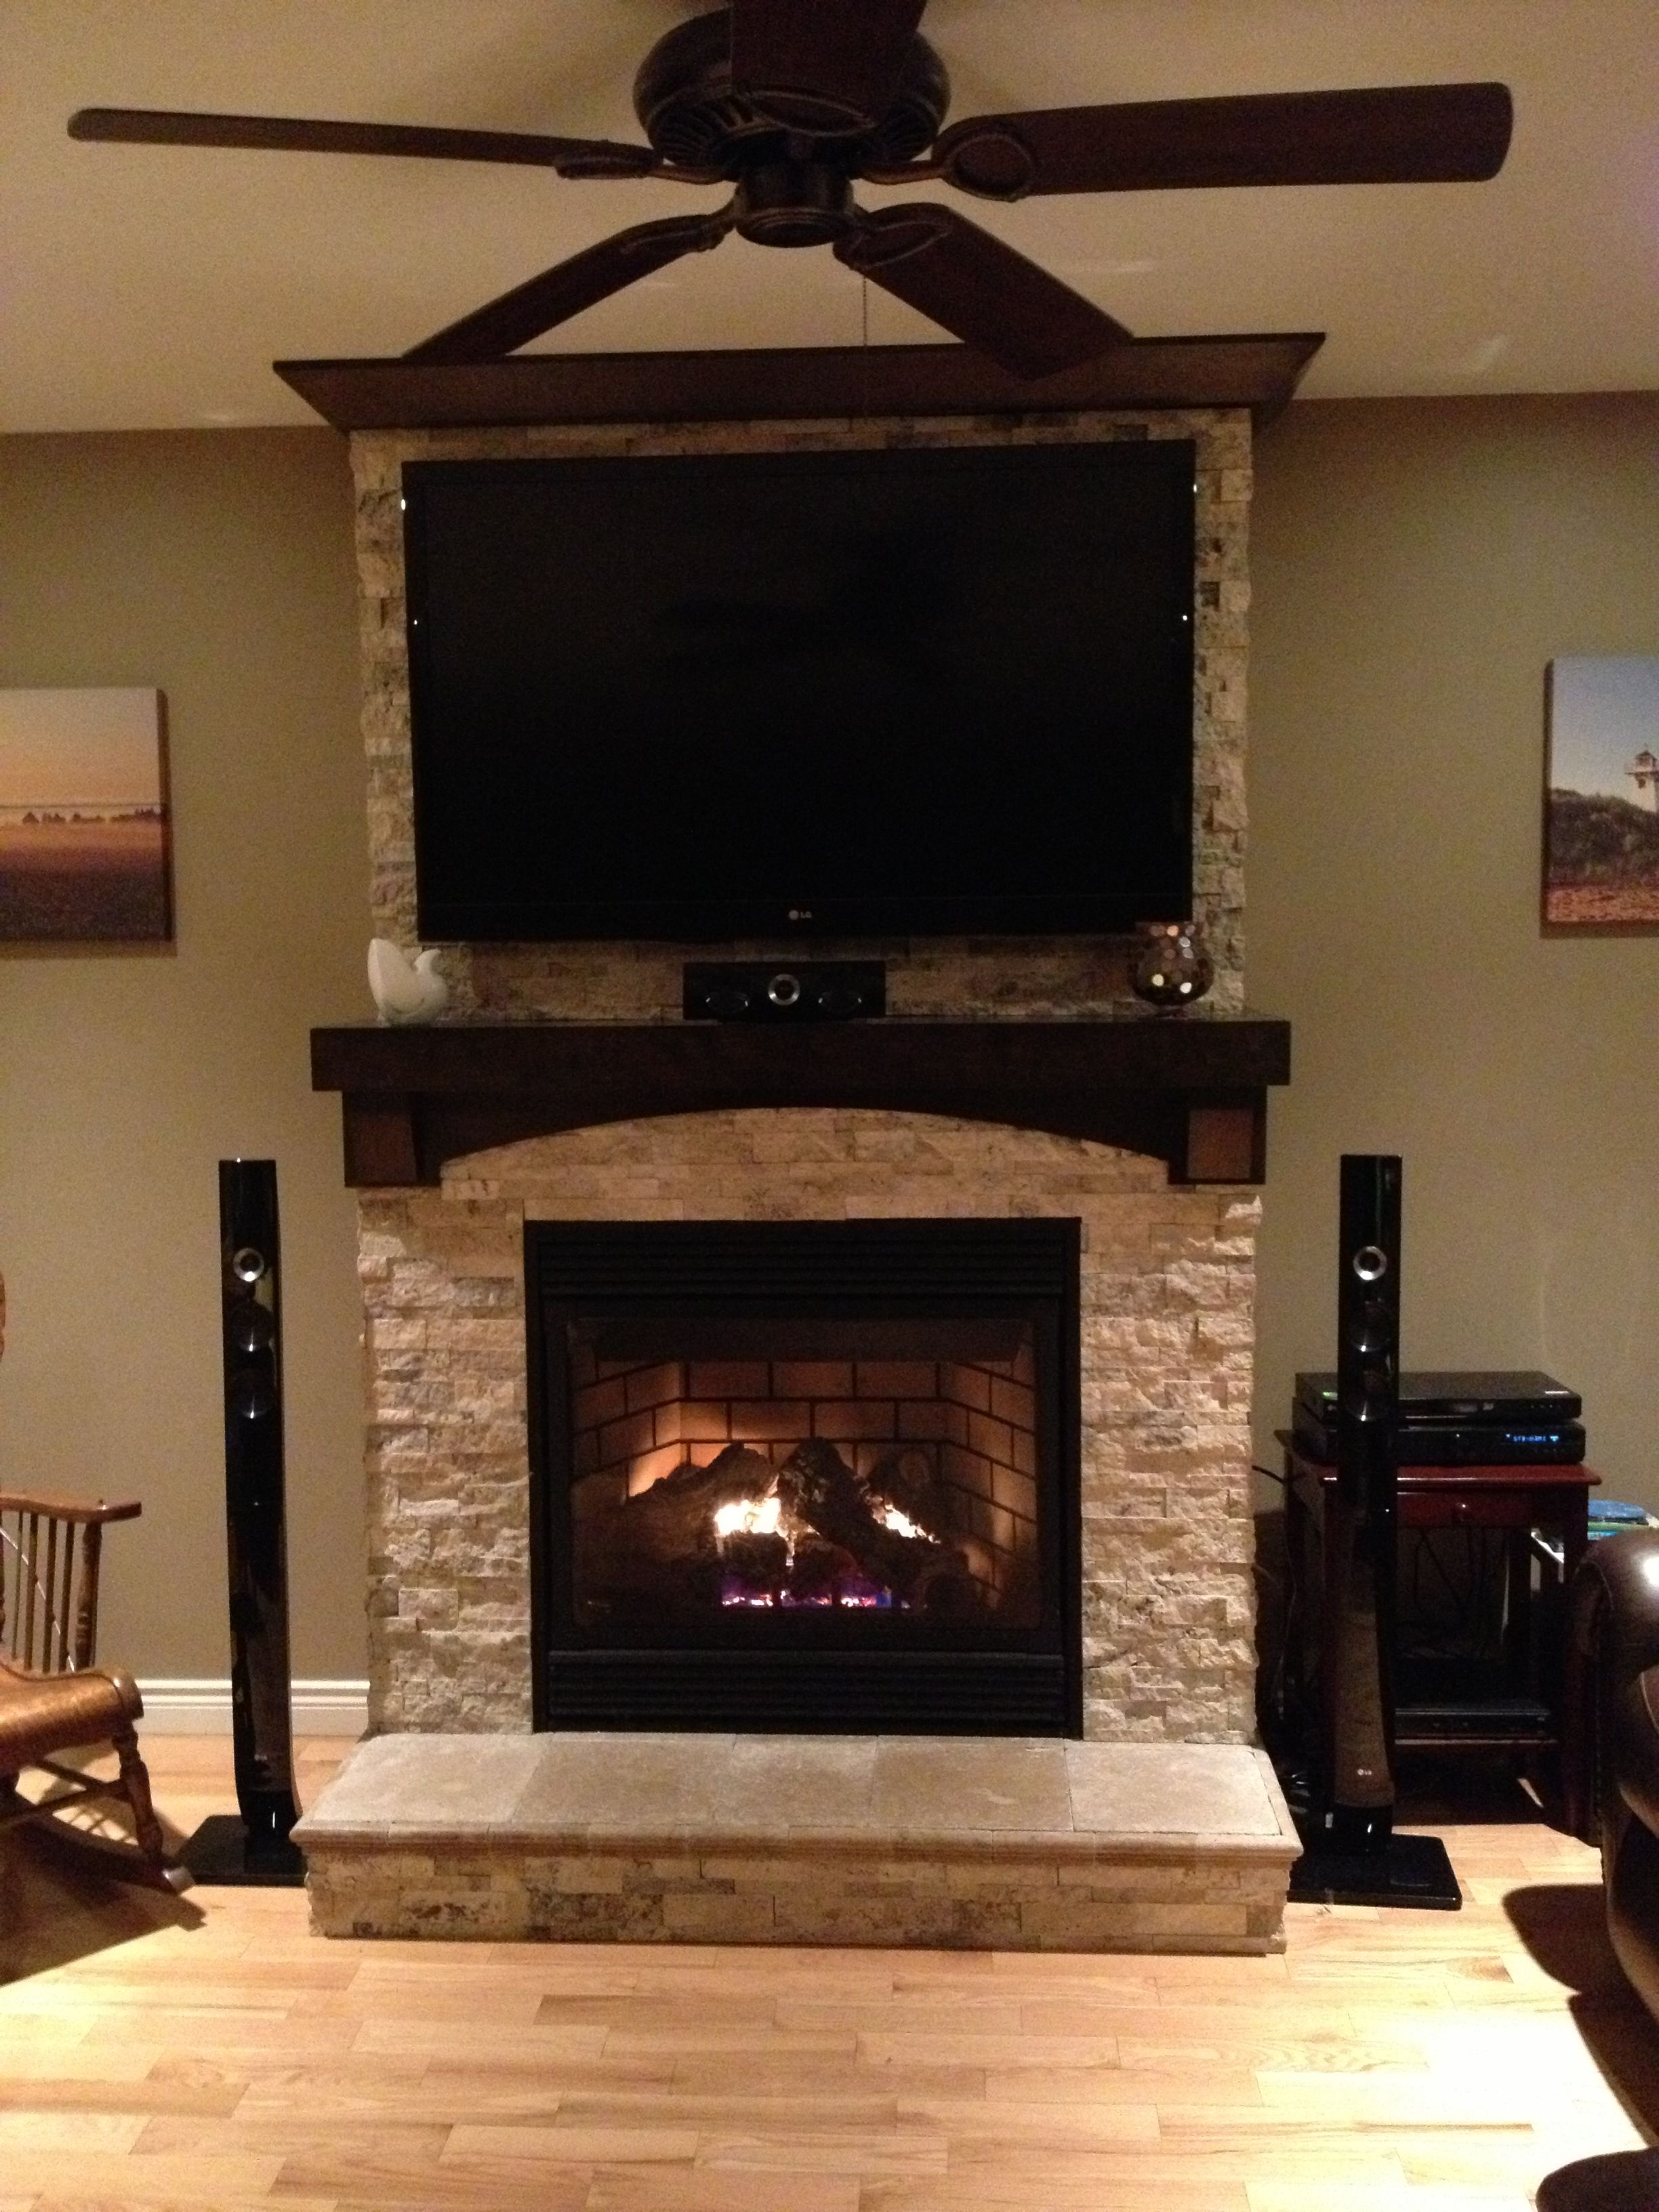 Stone On Fireplace With Tv Mounted Over Mantle Home Fireplace Tv Above Fireplace Fireplace Remodel